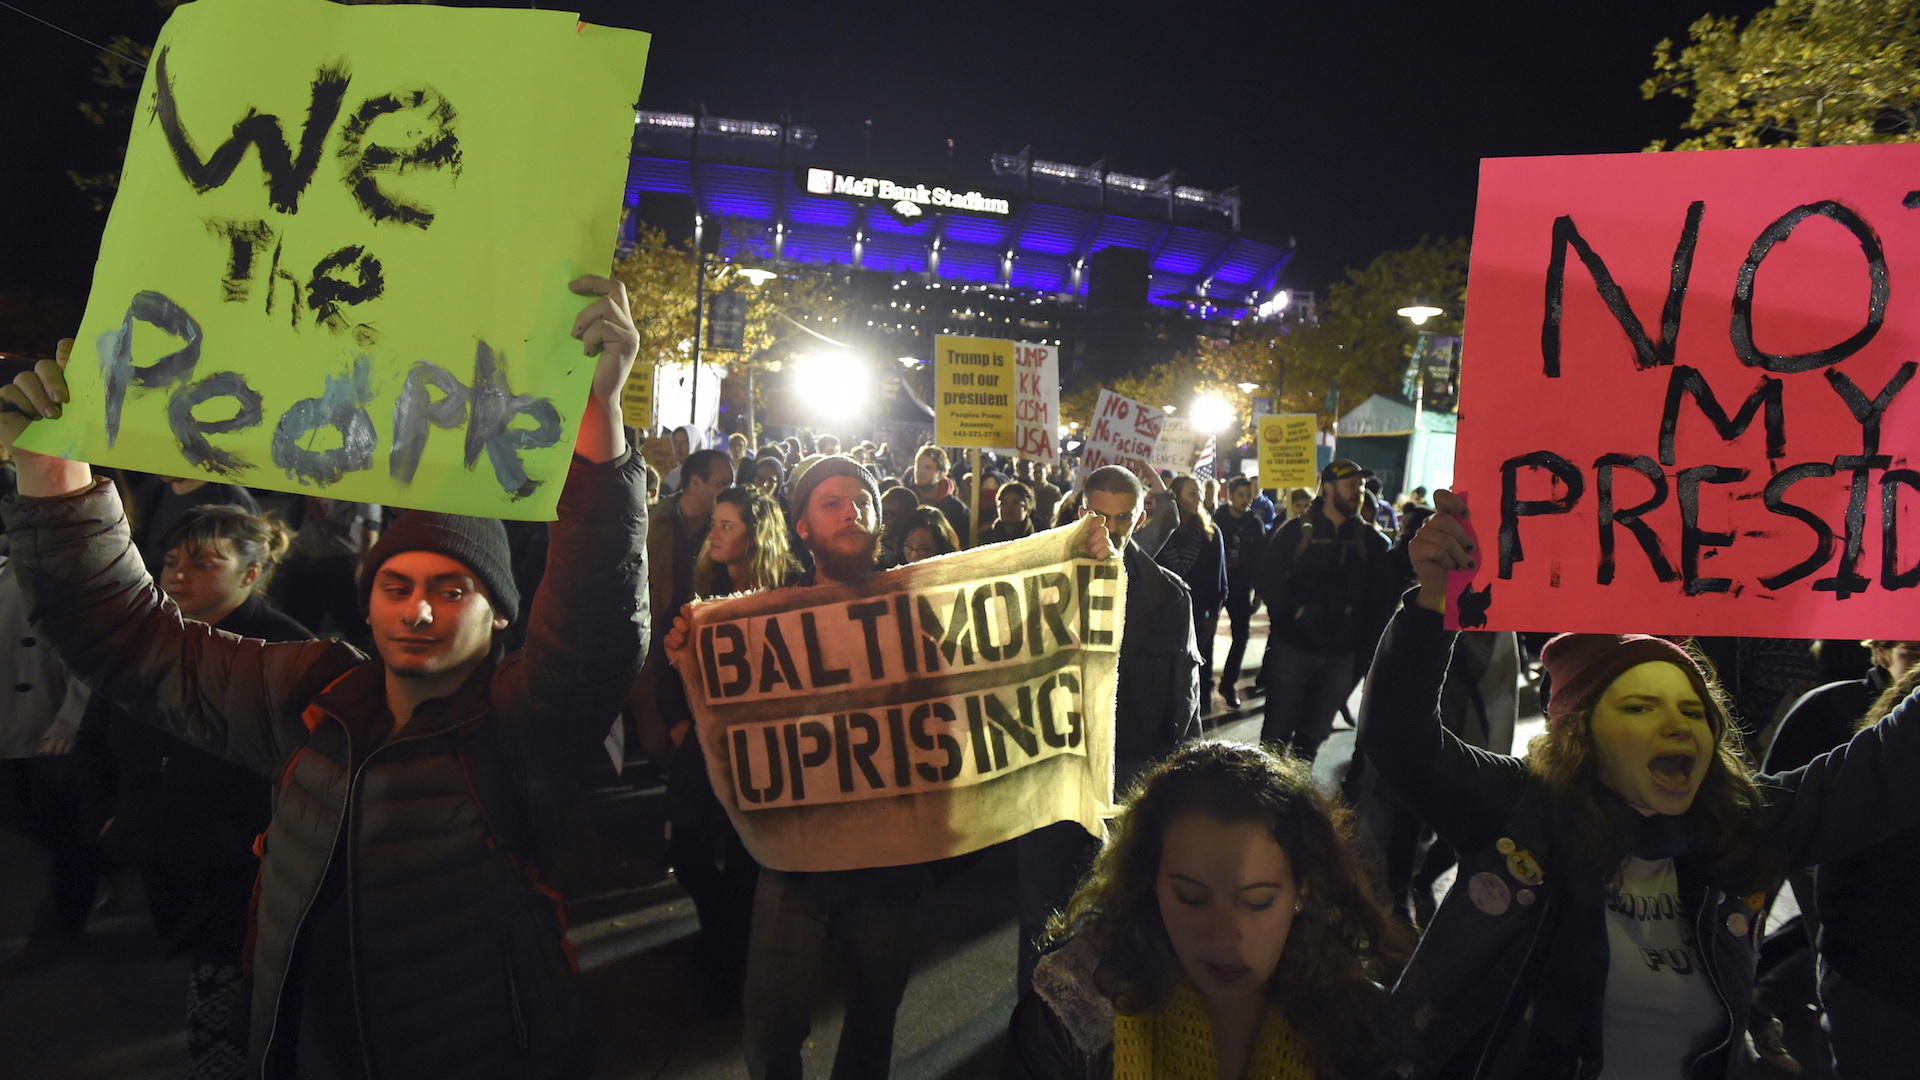 Vigils and protests swell across U.S. in wake of Trump victory